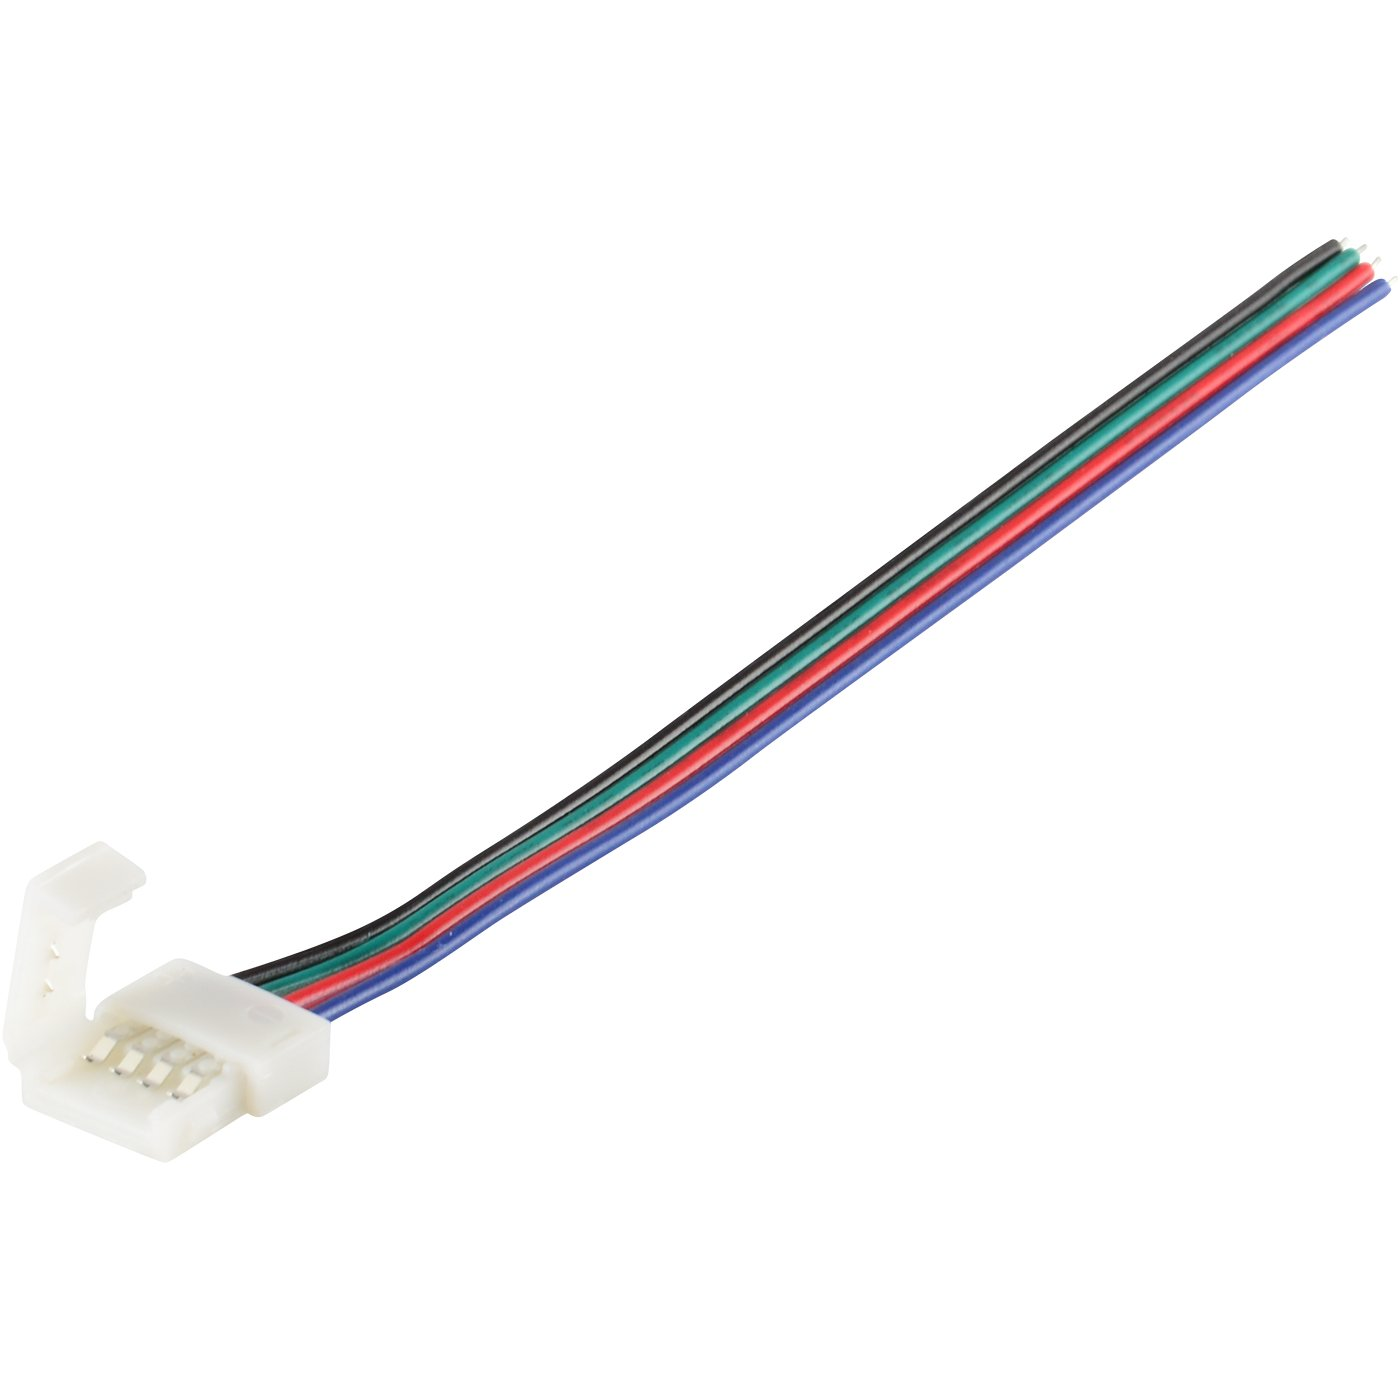 Abi 10mm Solderless 4 Wire Connector Clip For 5050 Rgb Wireclip Wiring Led Light Strips Photo Strip Power Home Improvement